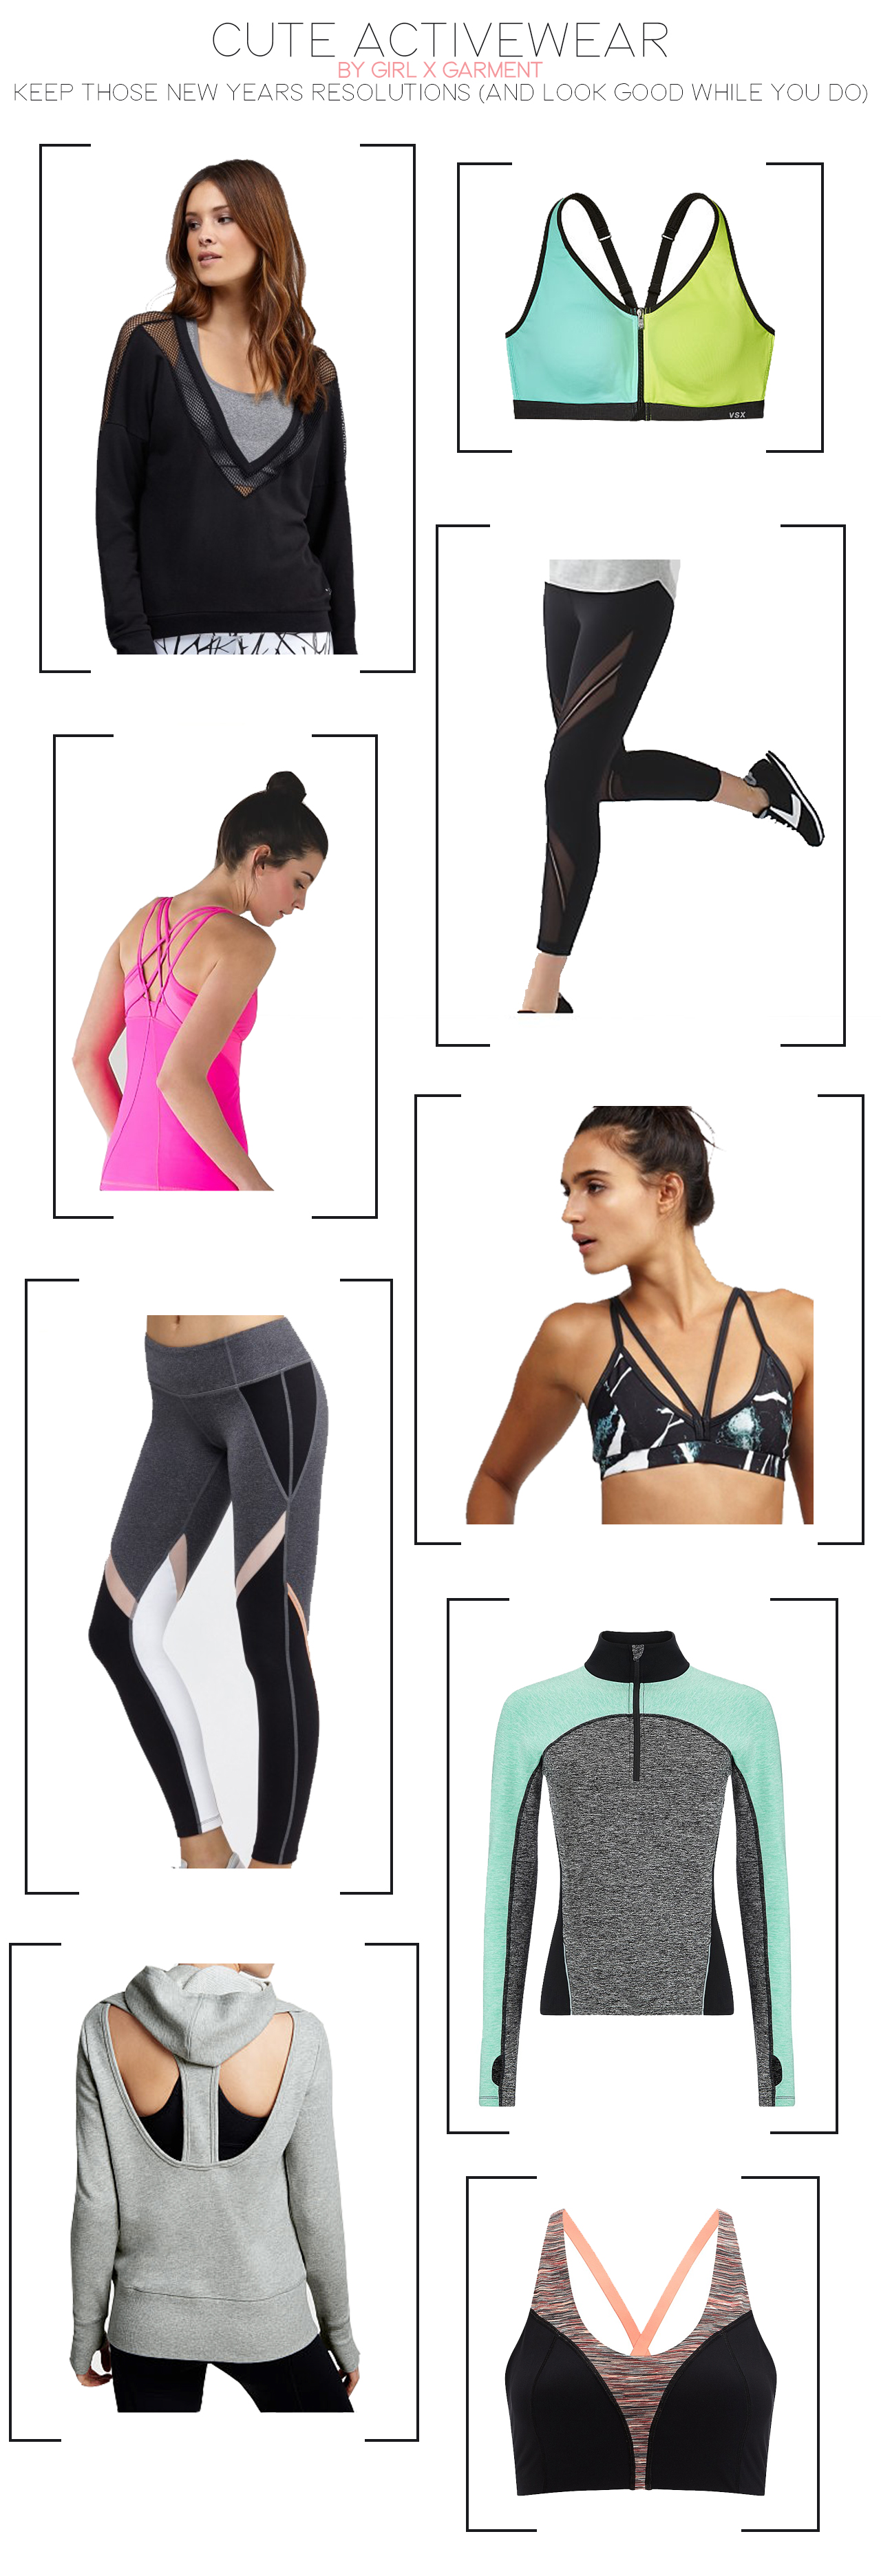 Cute Activewear / Workout Clothes (via Girl x Garment)